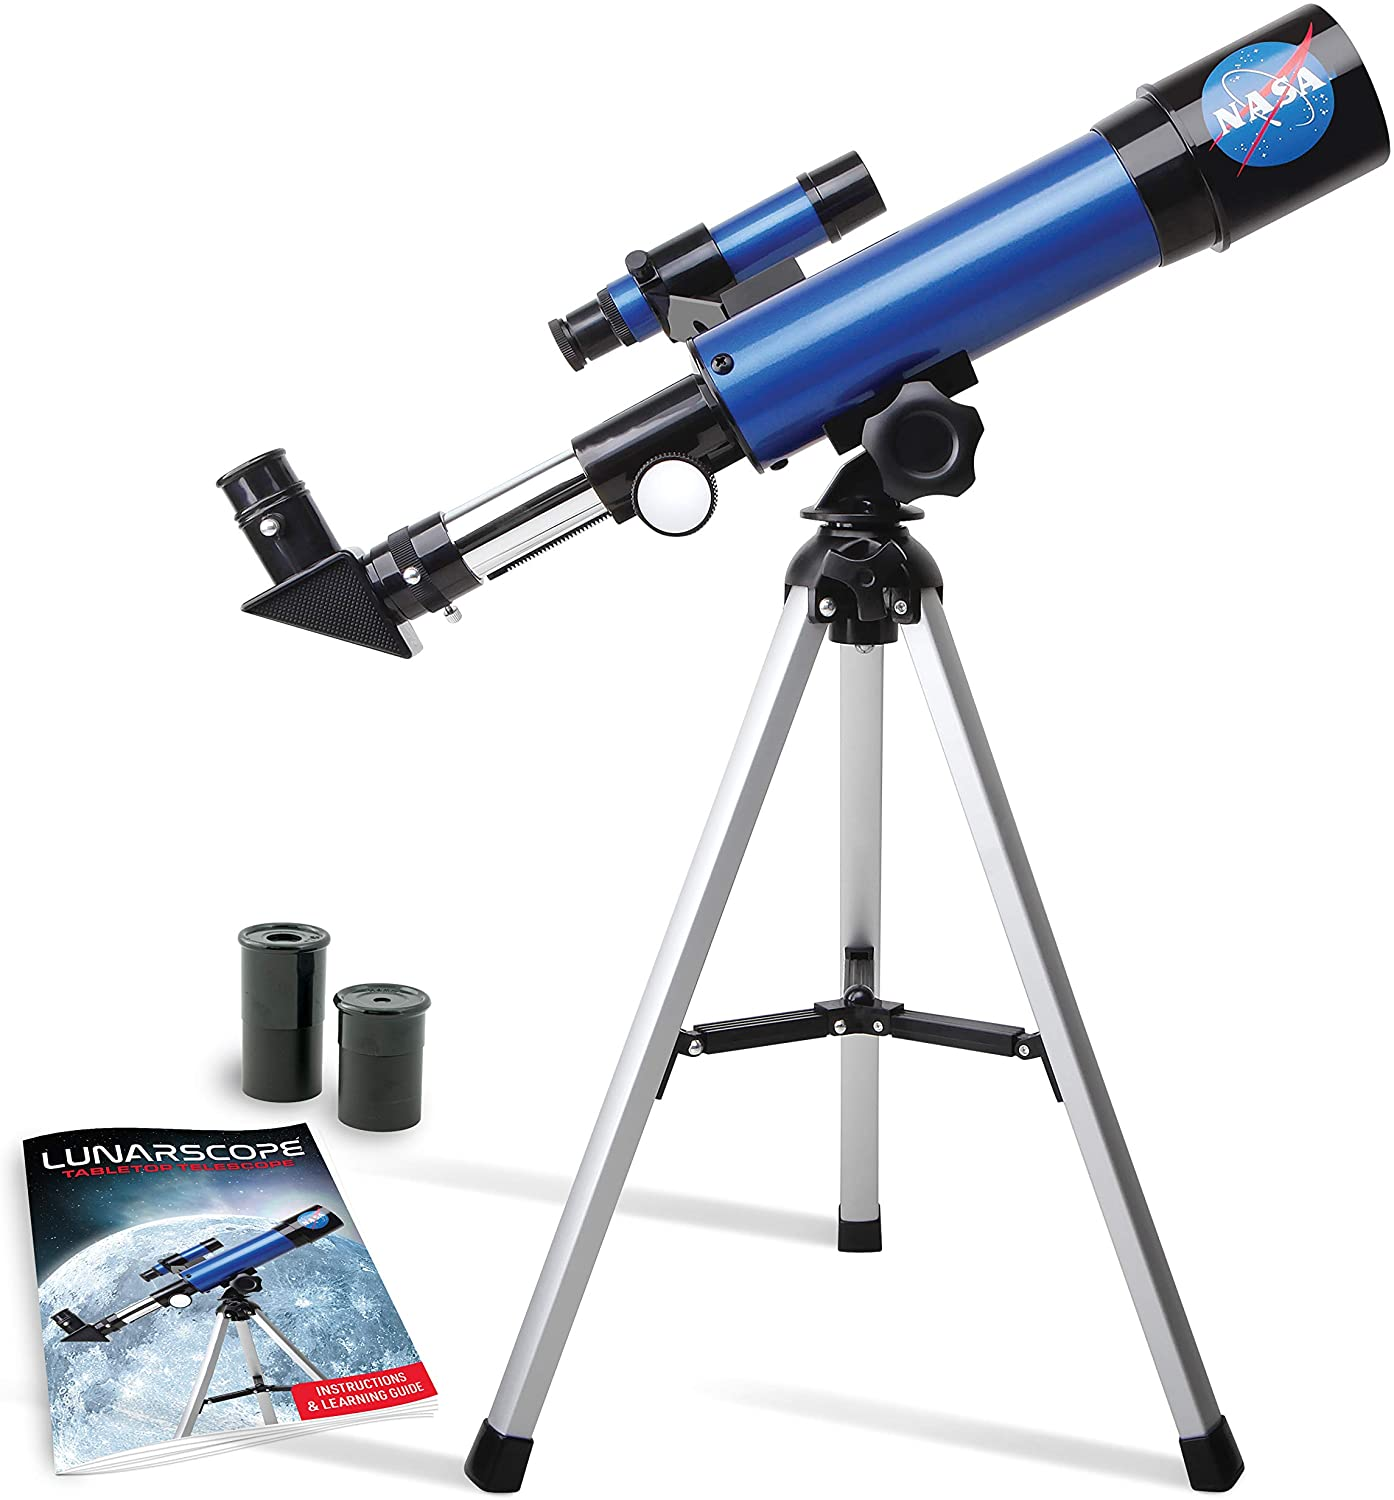 Review of NASA Lunar Telescope for Kids, Capable of 90x Magnification